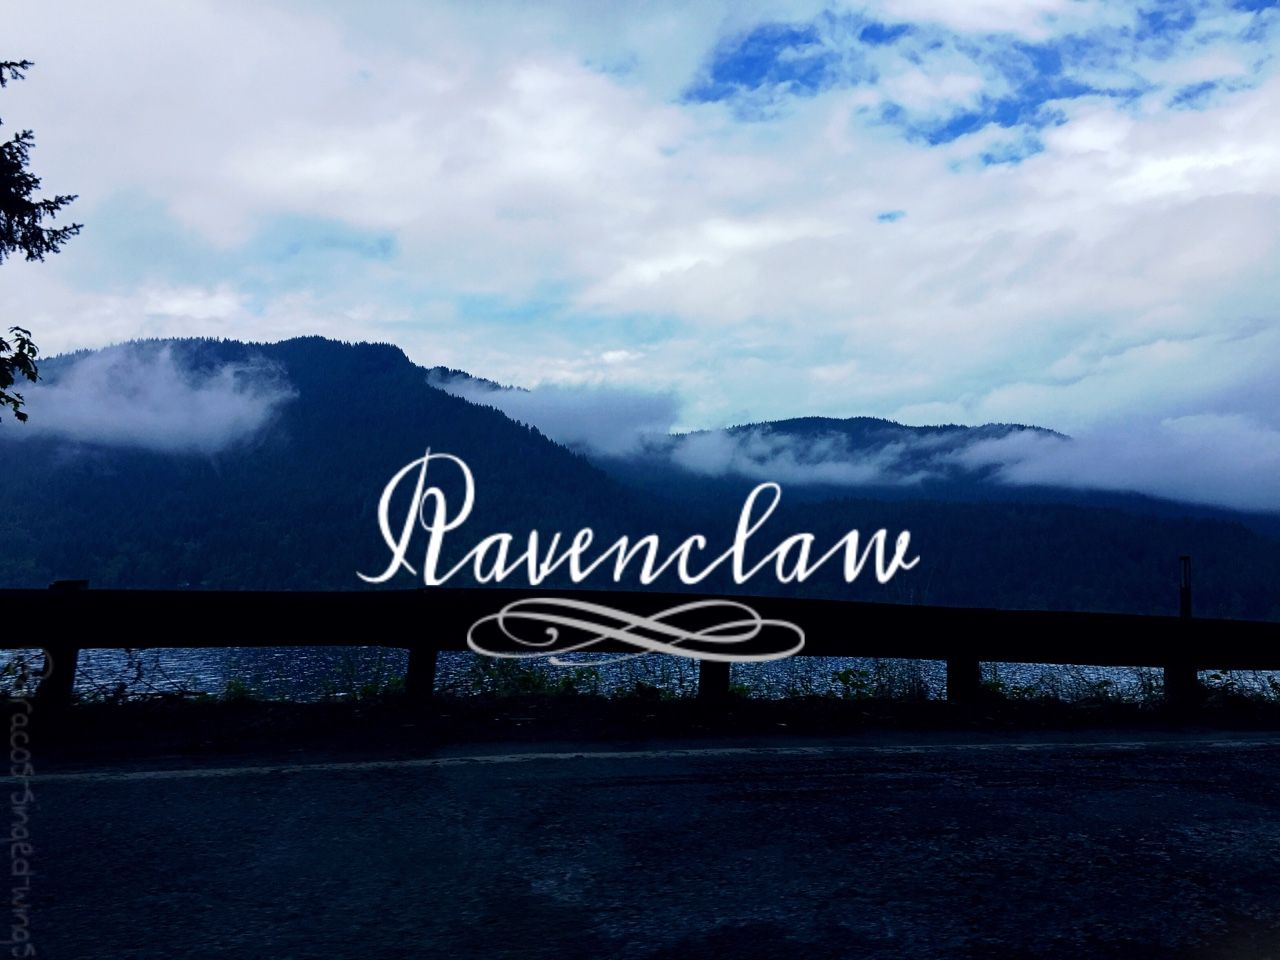 Pin On Ravenclaw